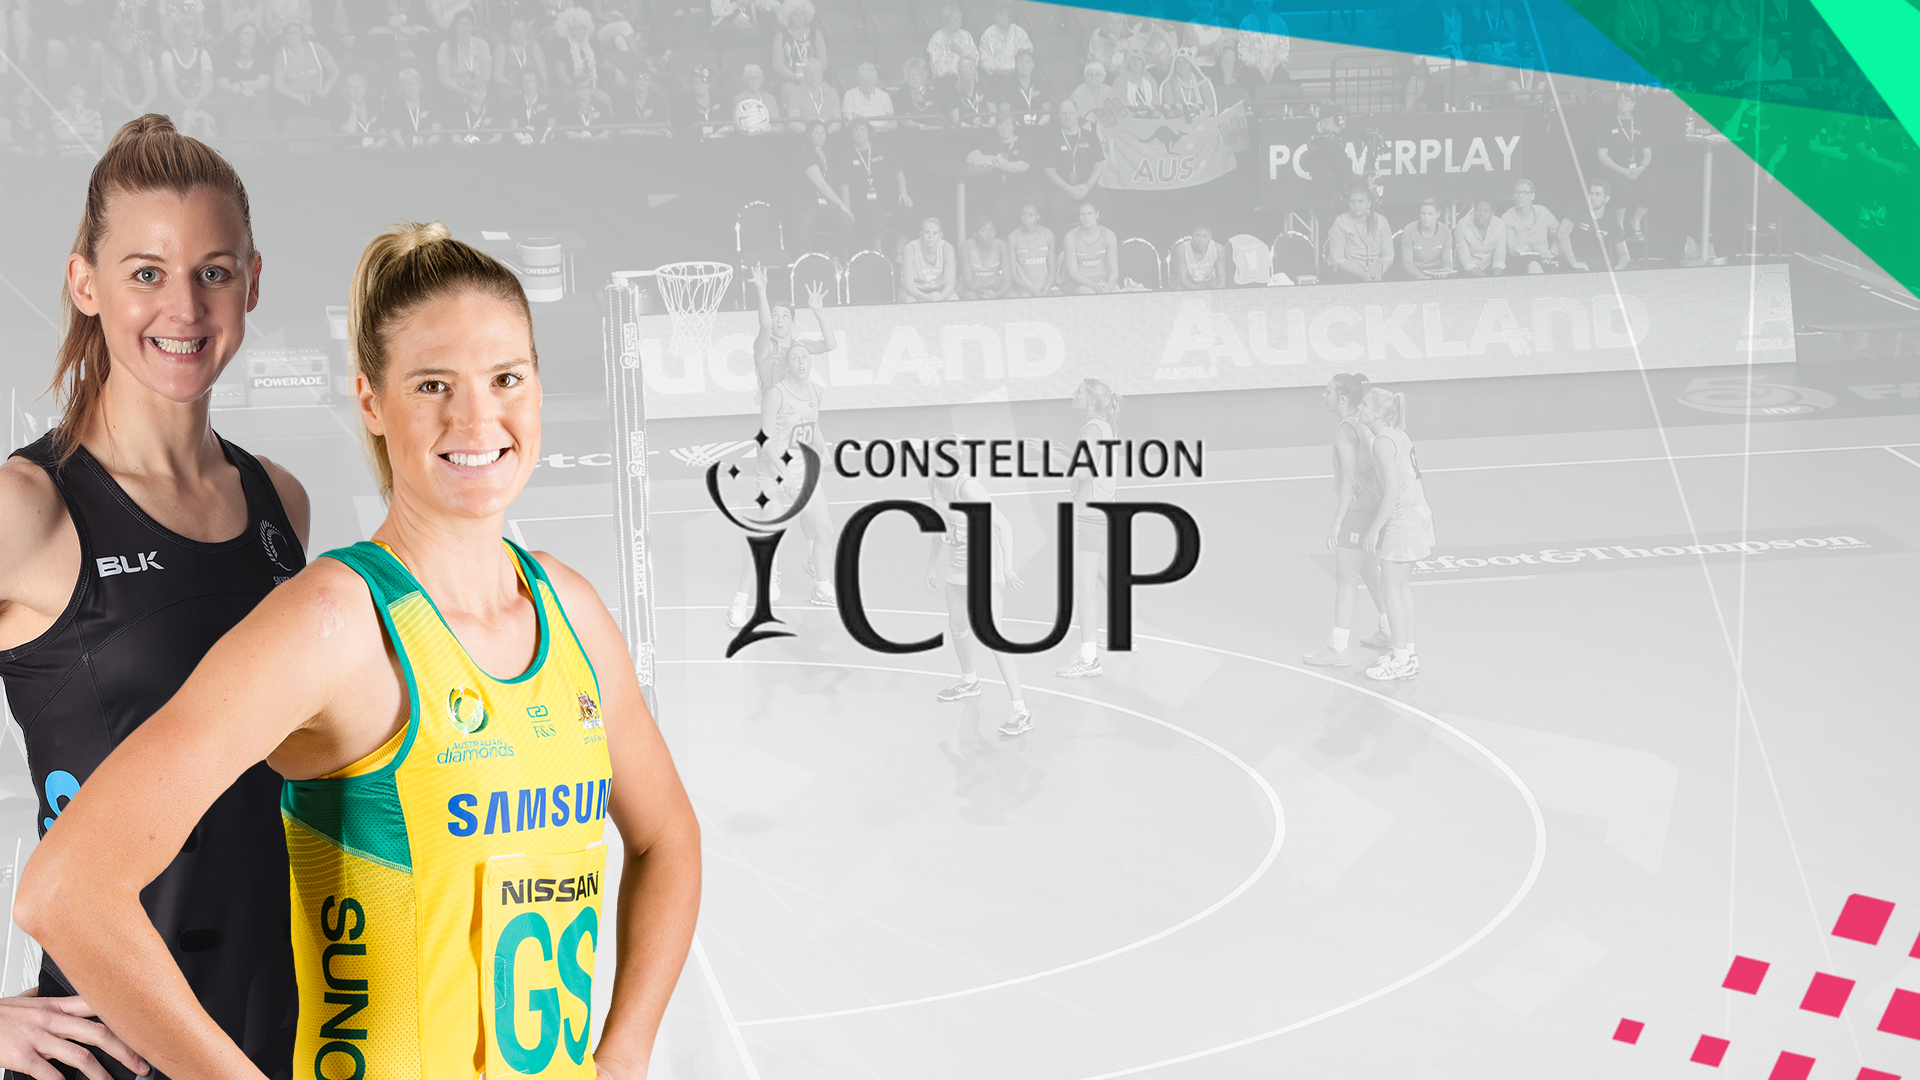 constellation cup - photo #18